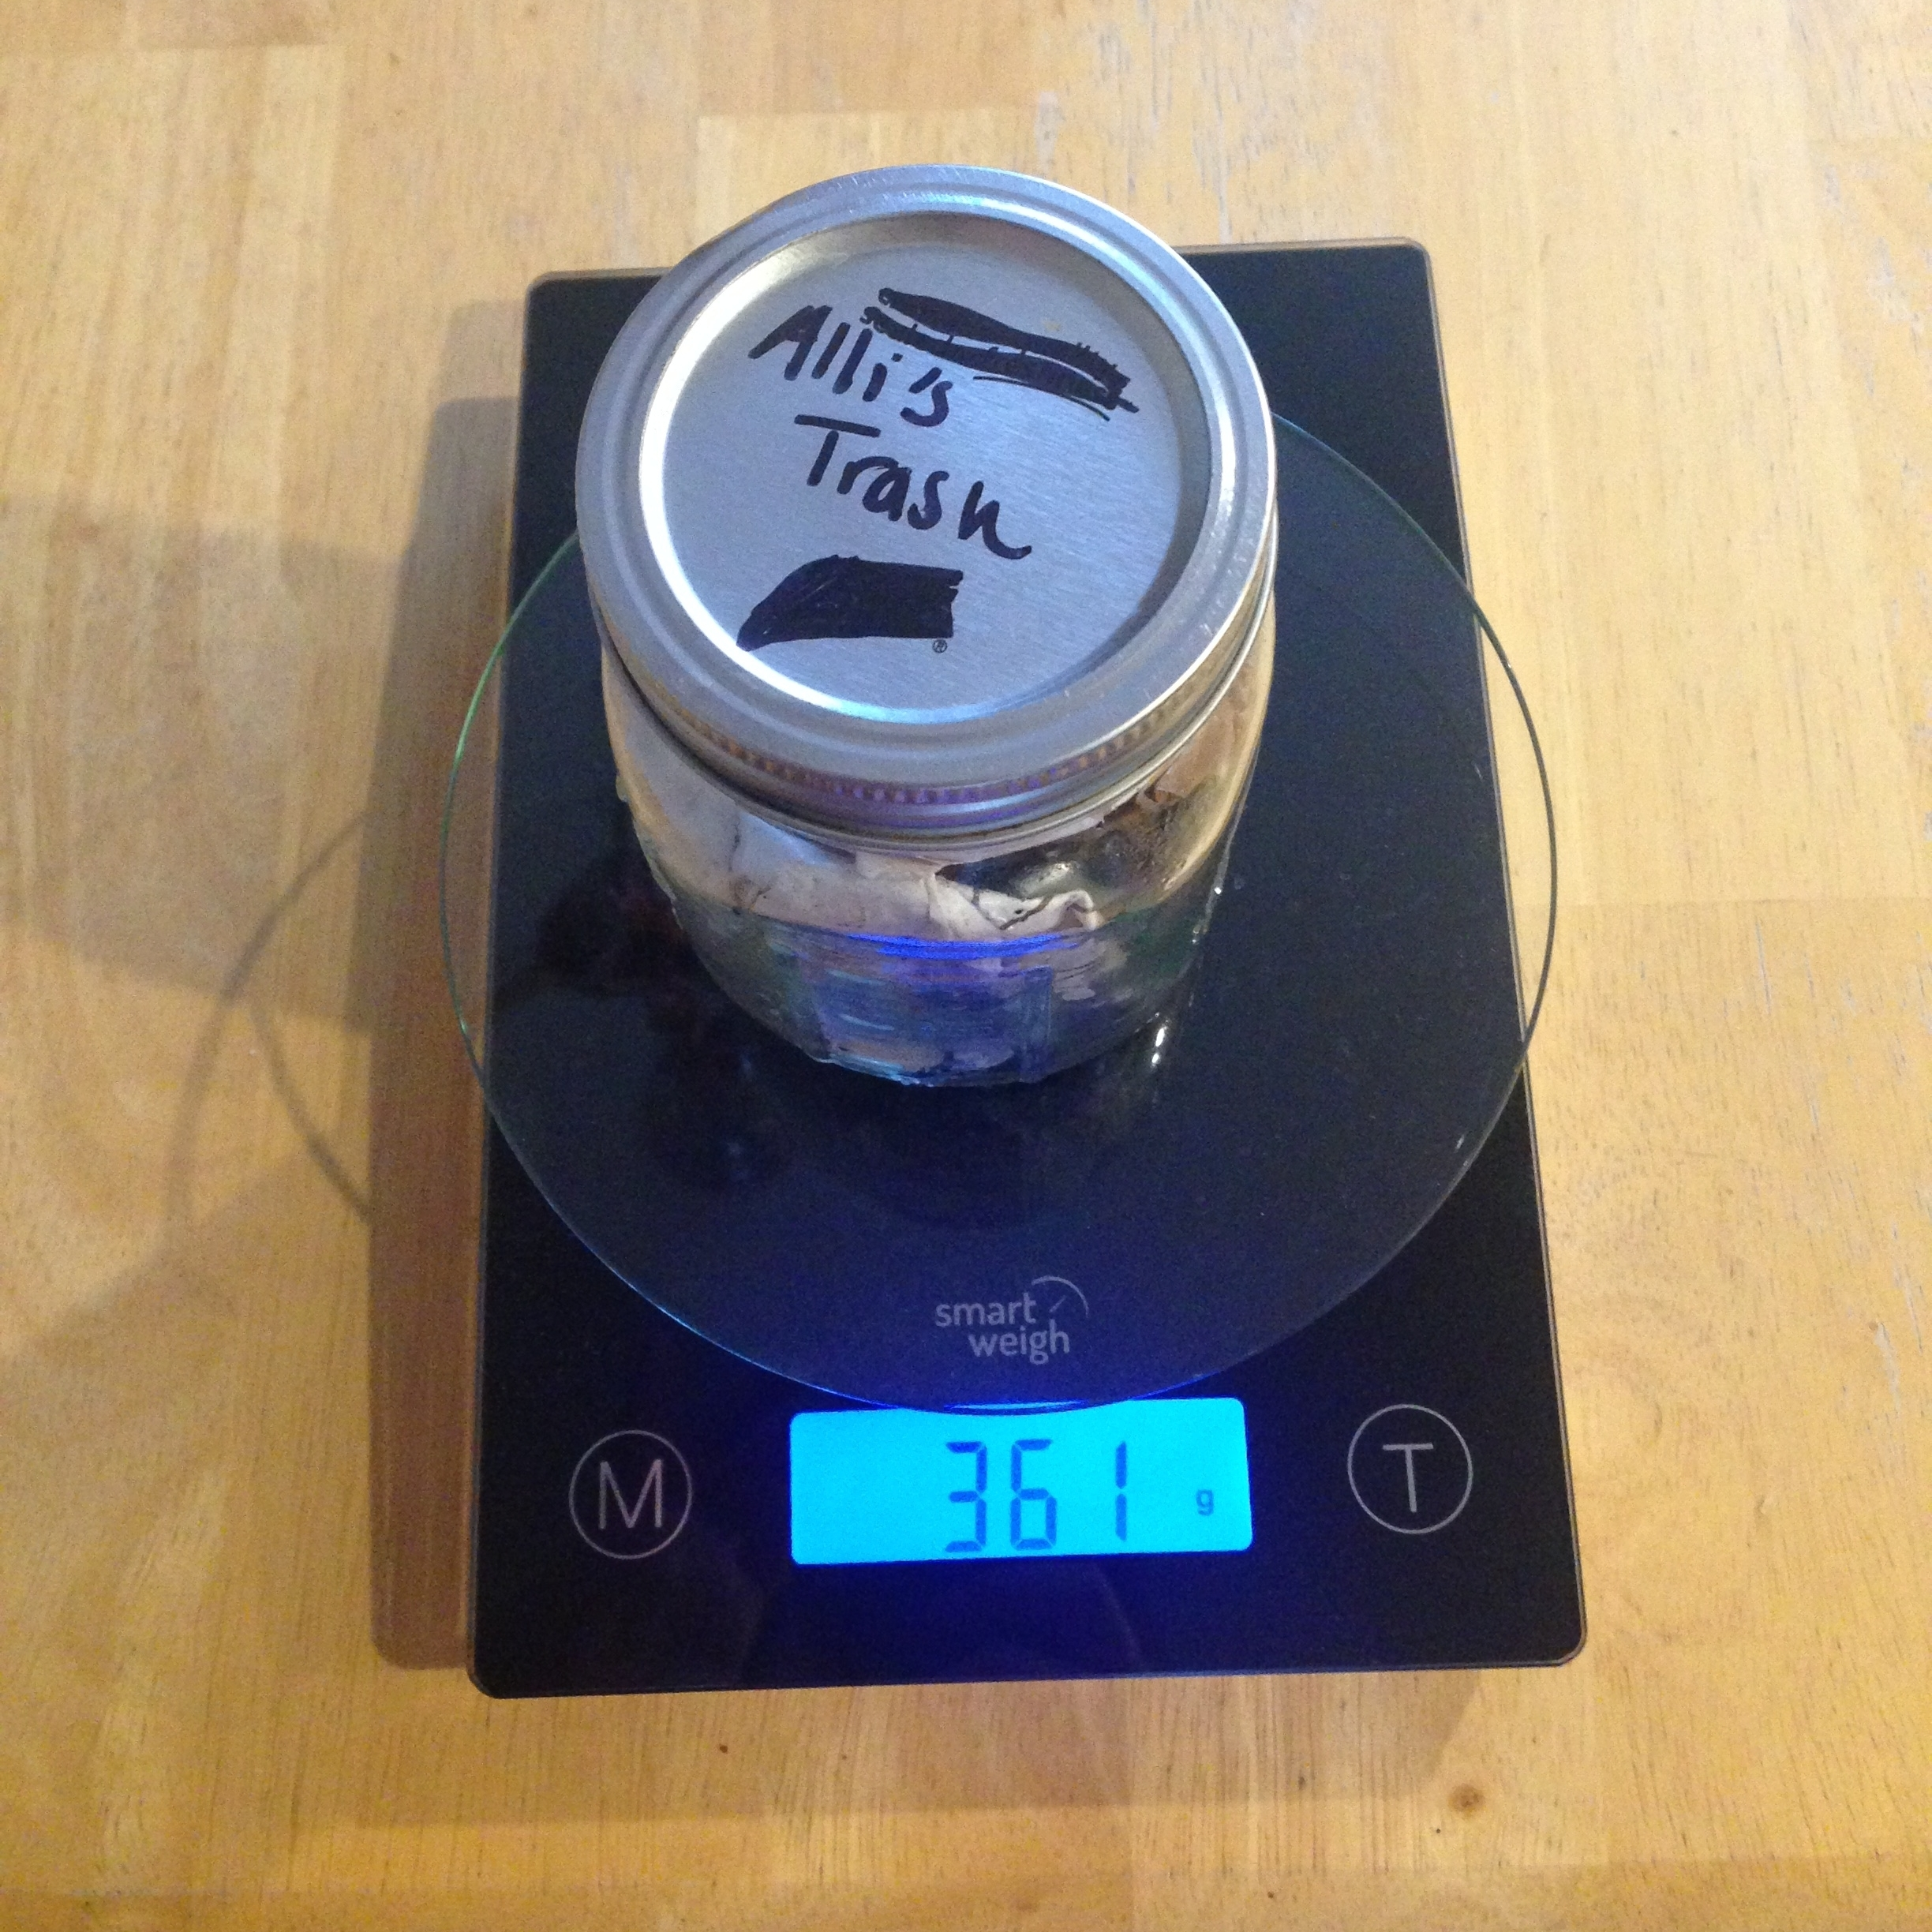 My full mason jar of trash weighing 361g